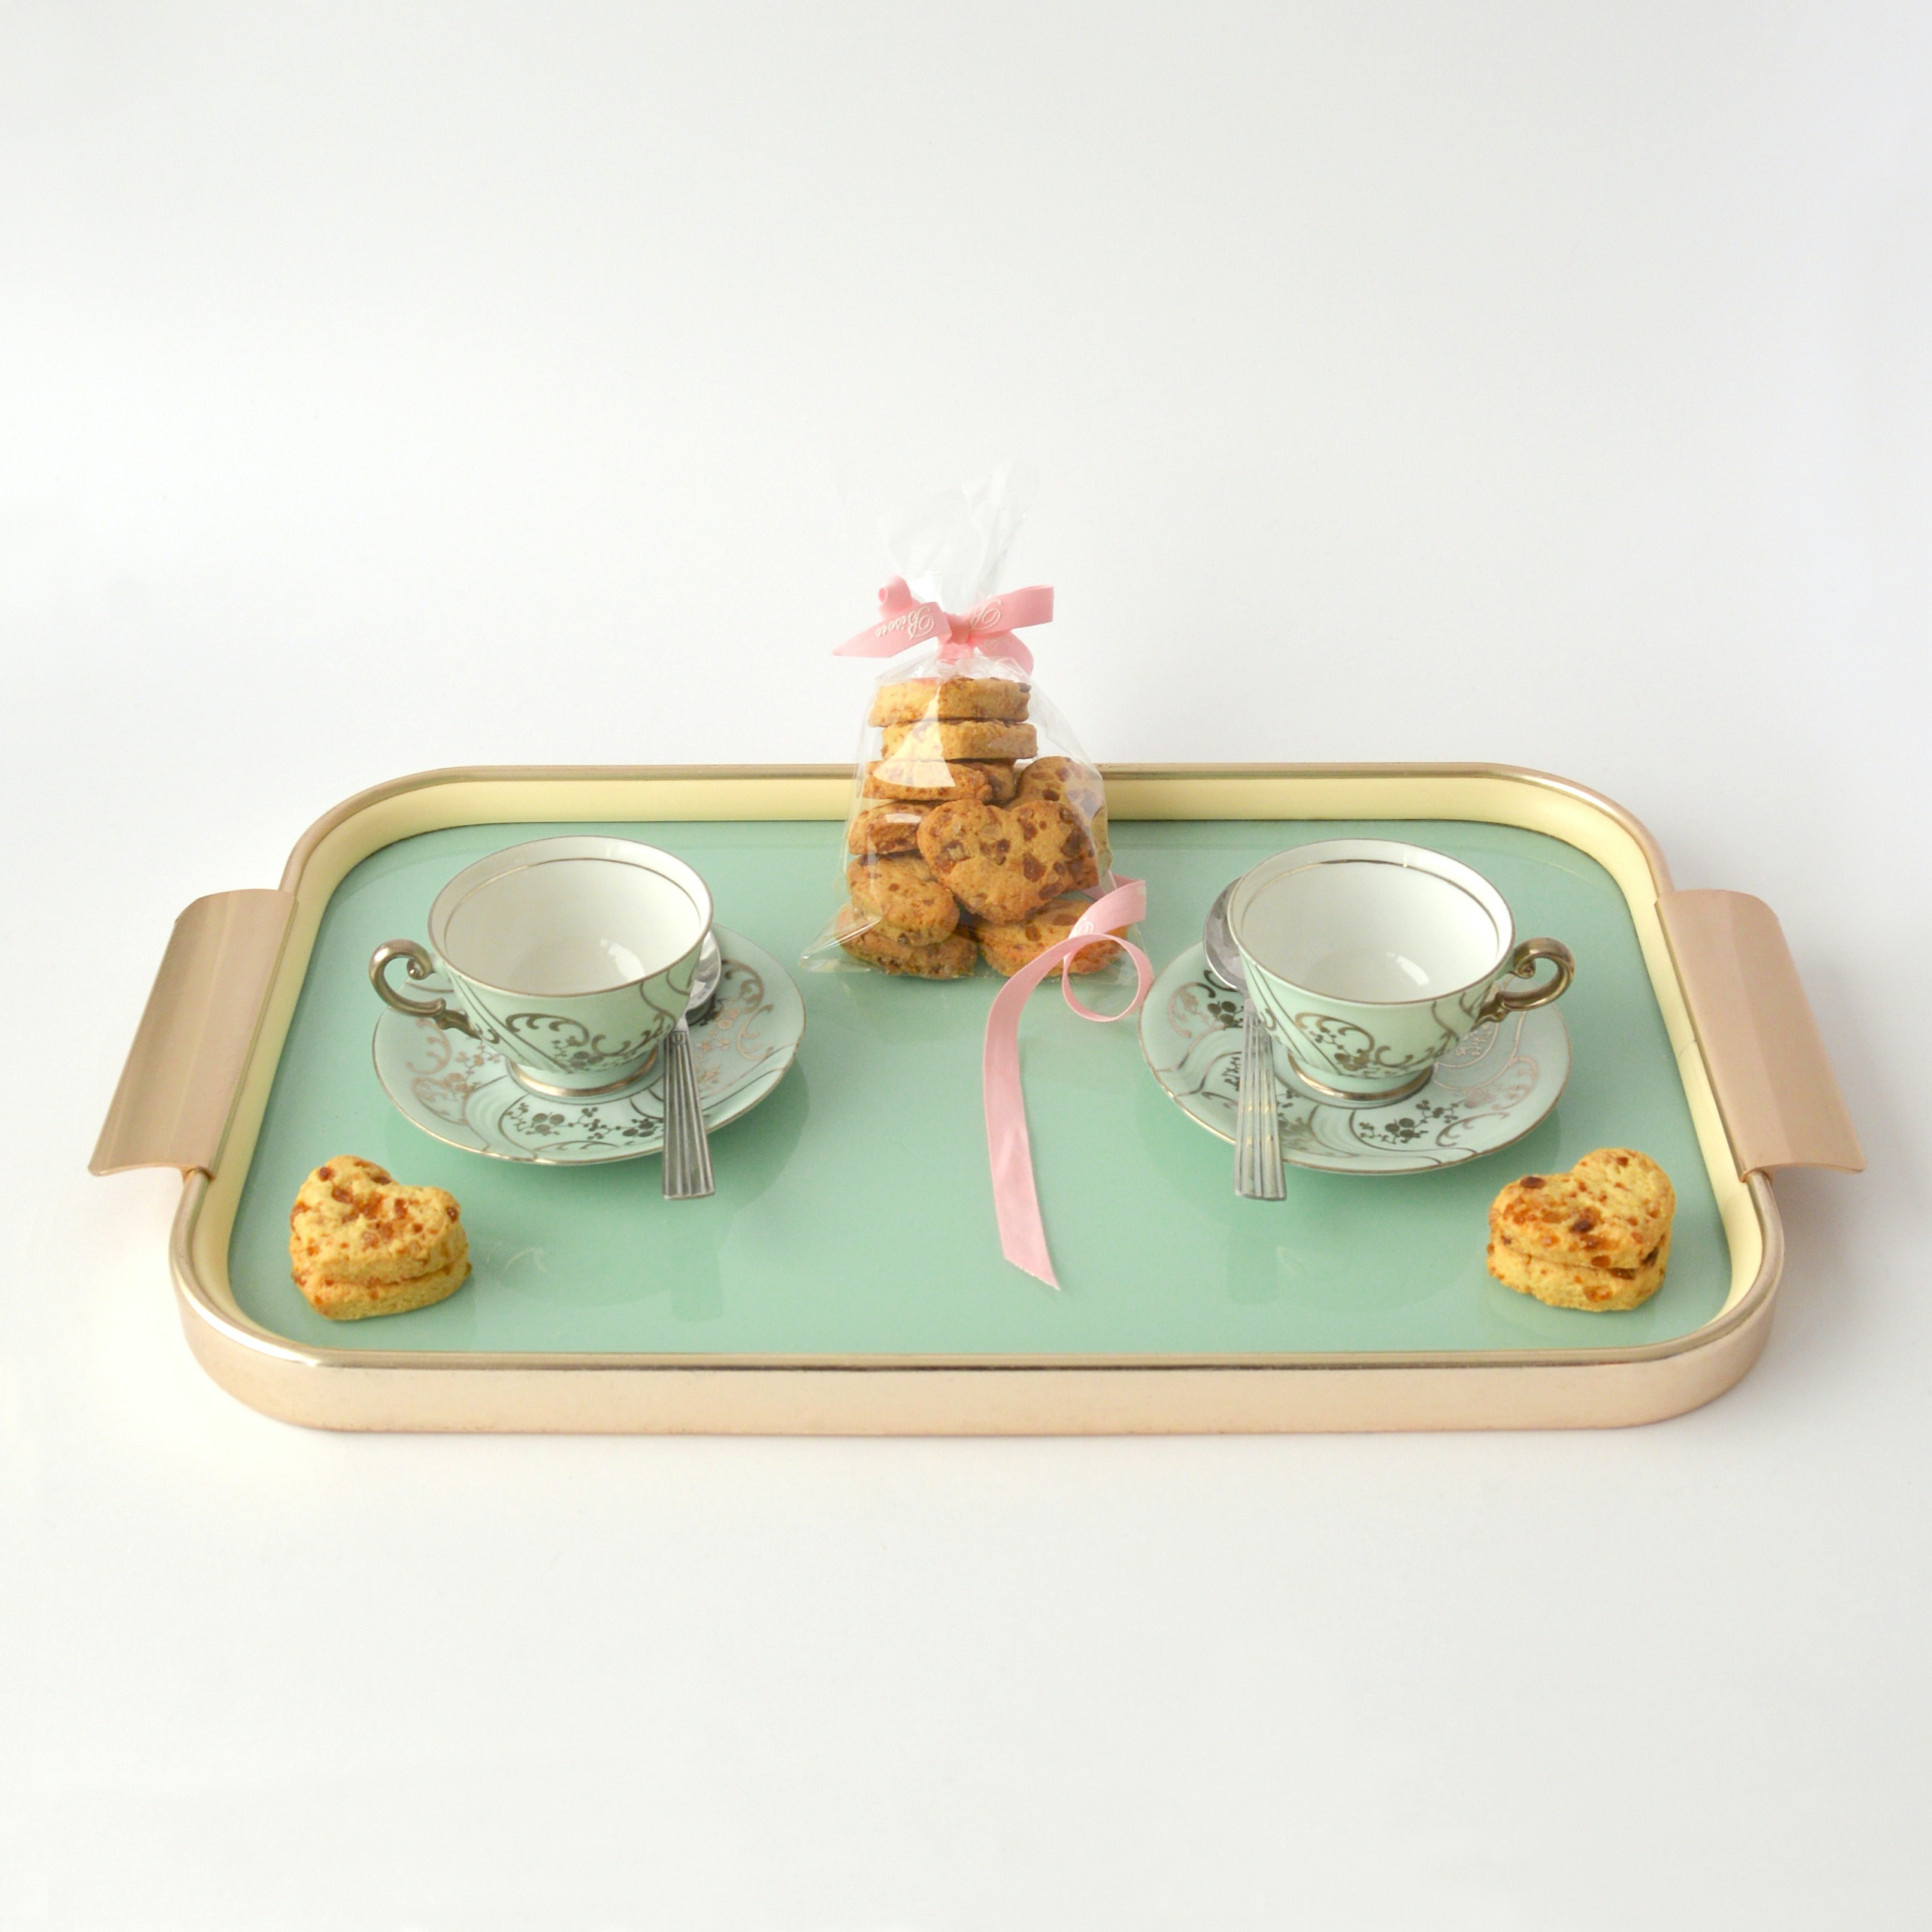 A tray with two teacups on saucers and a bag of cookies on a white surface